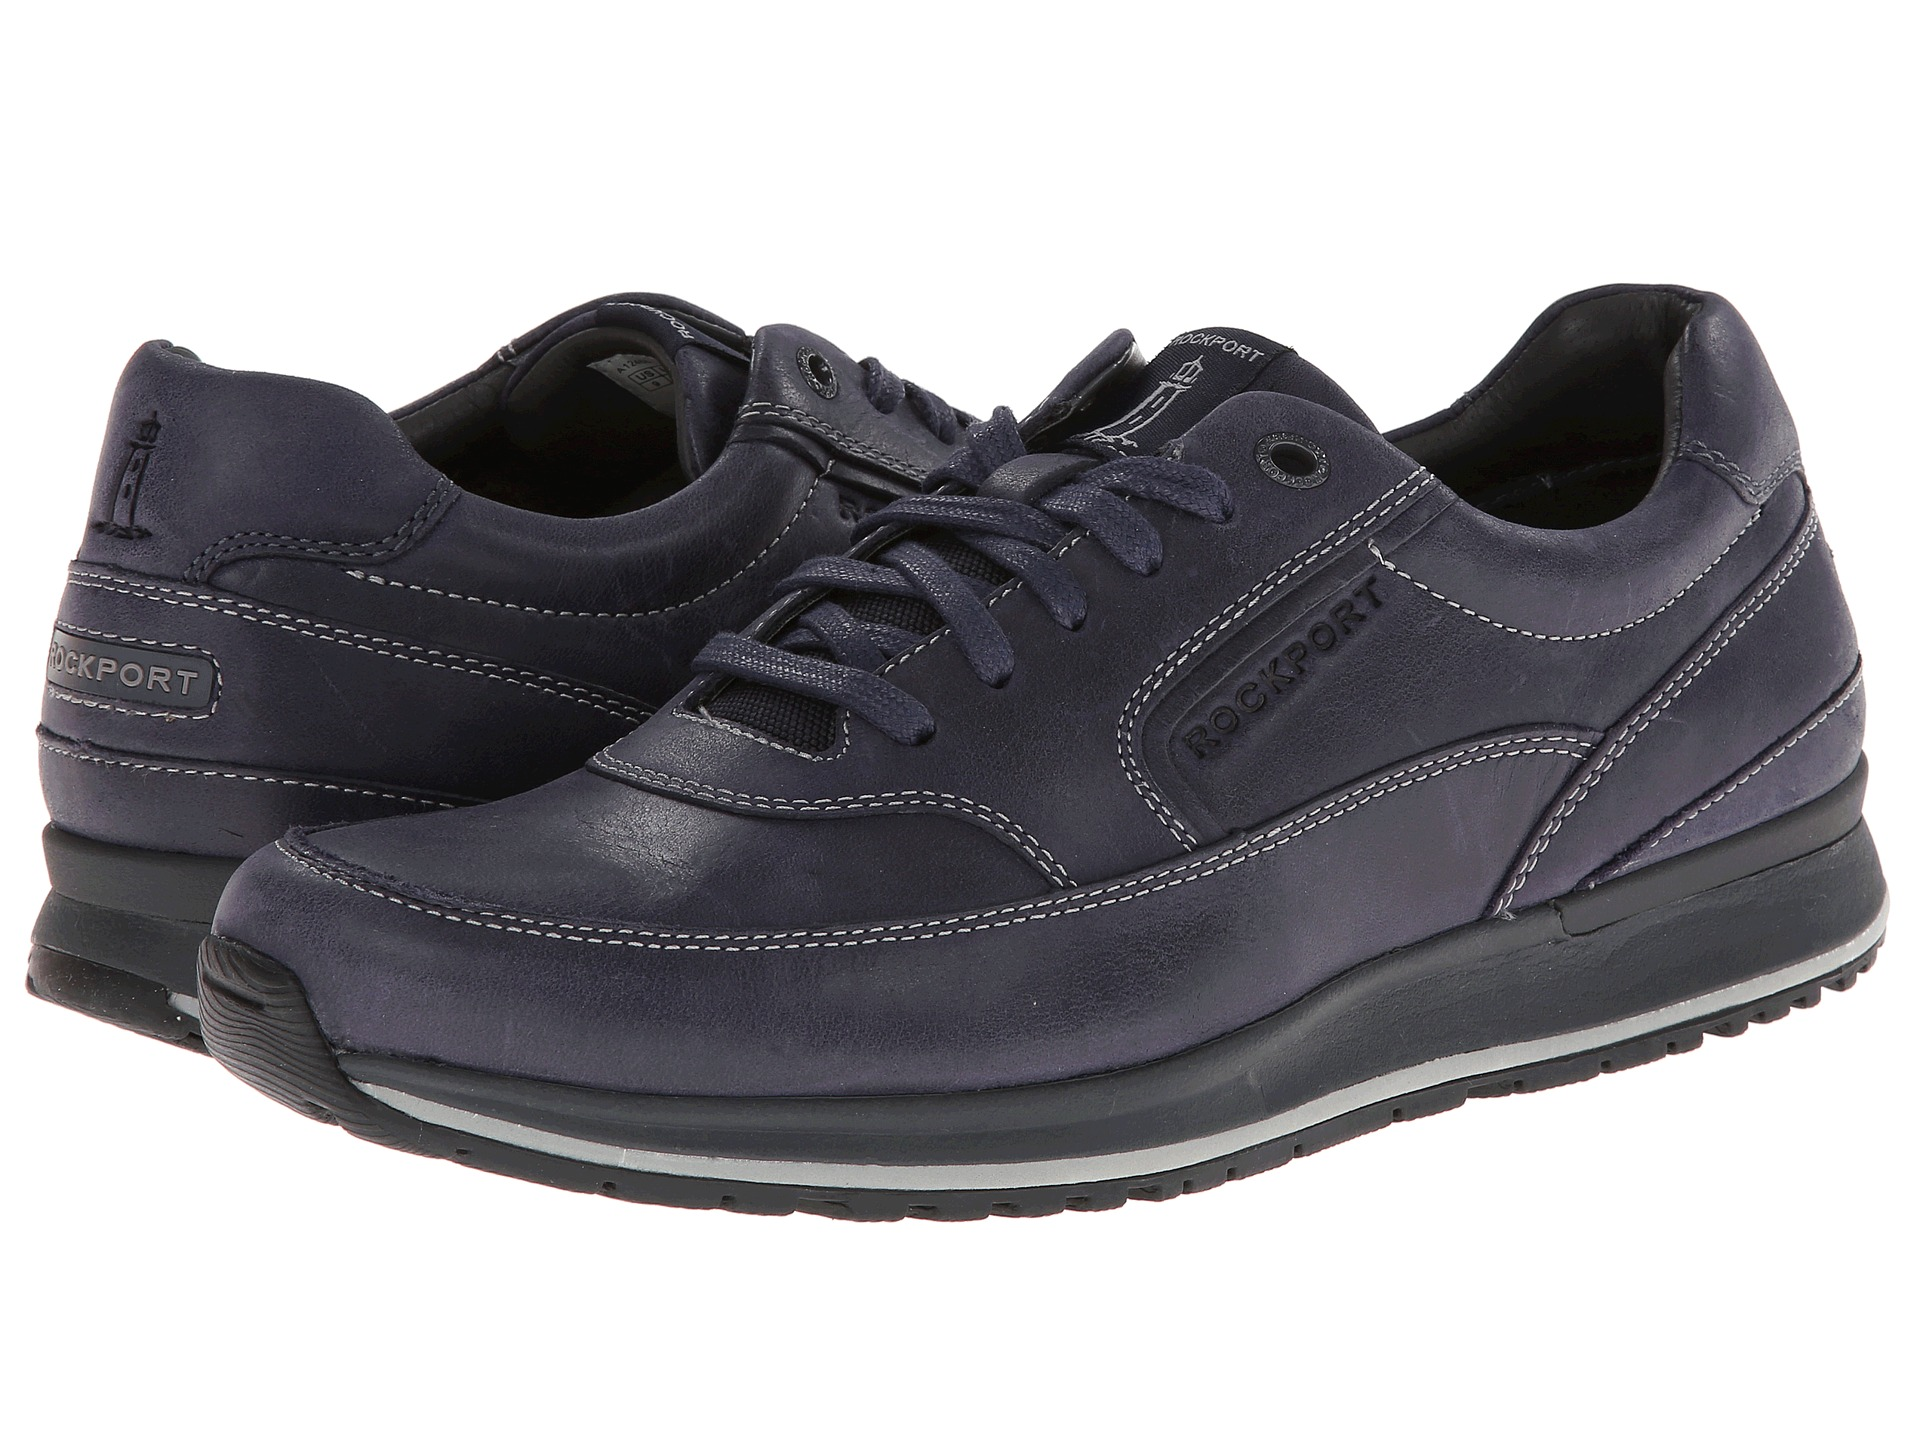 rockport crafted sport casual mudguard oxford zappos